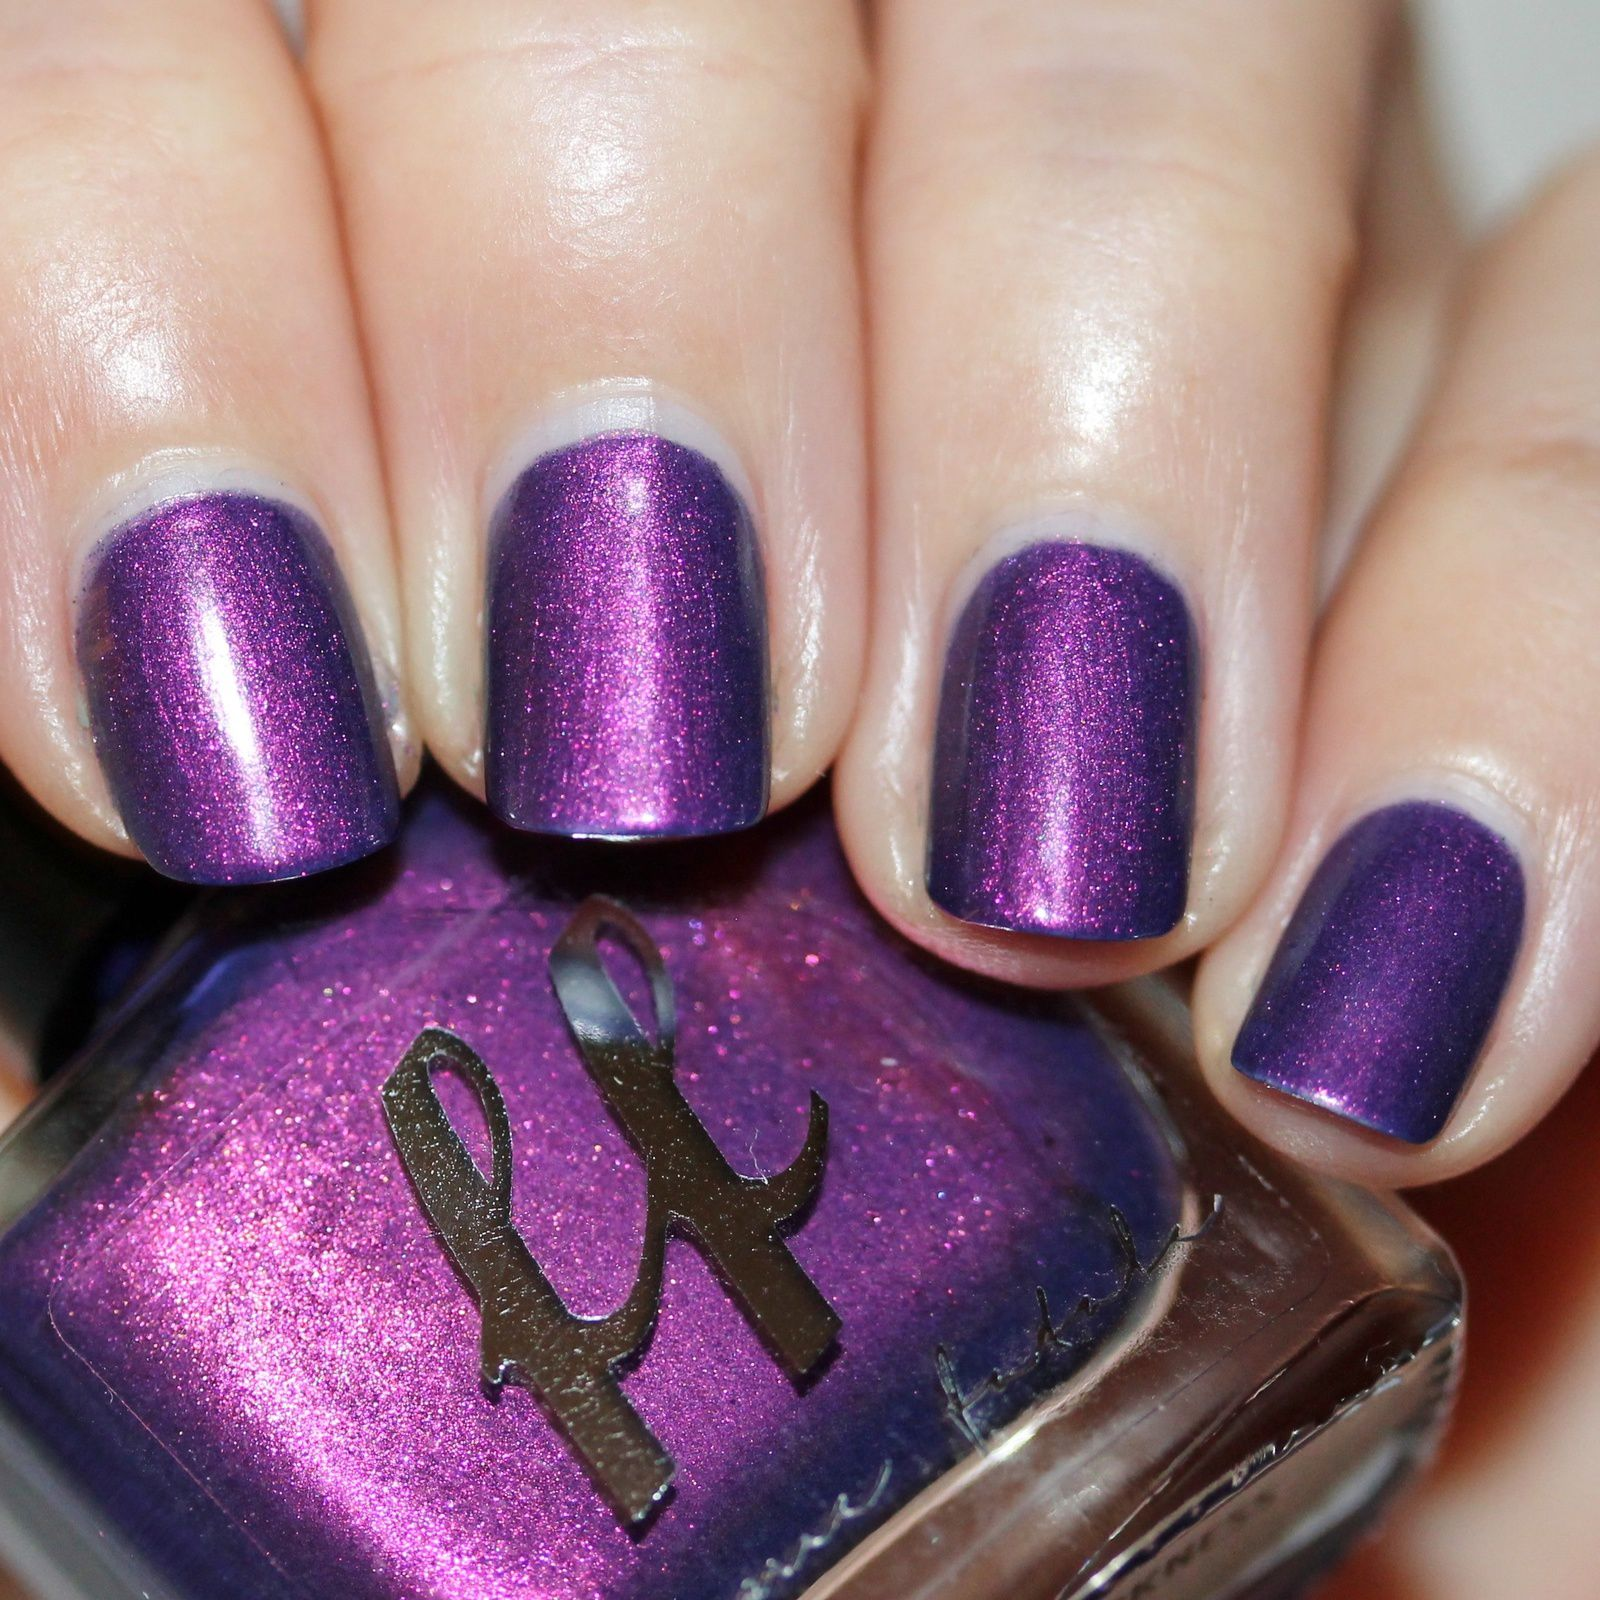 Femme Fatale Cosmetics The Mark of darkness (2 coats, no top coat)